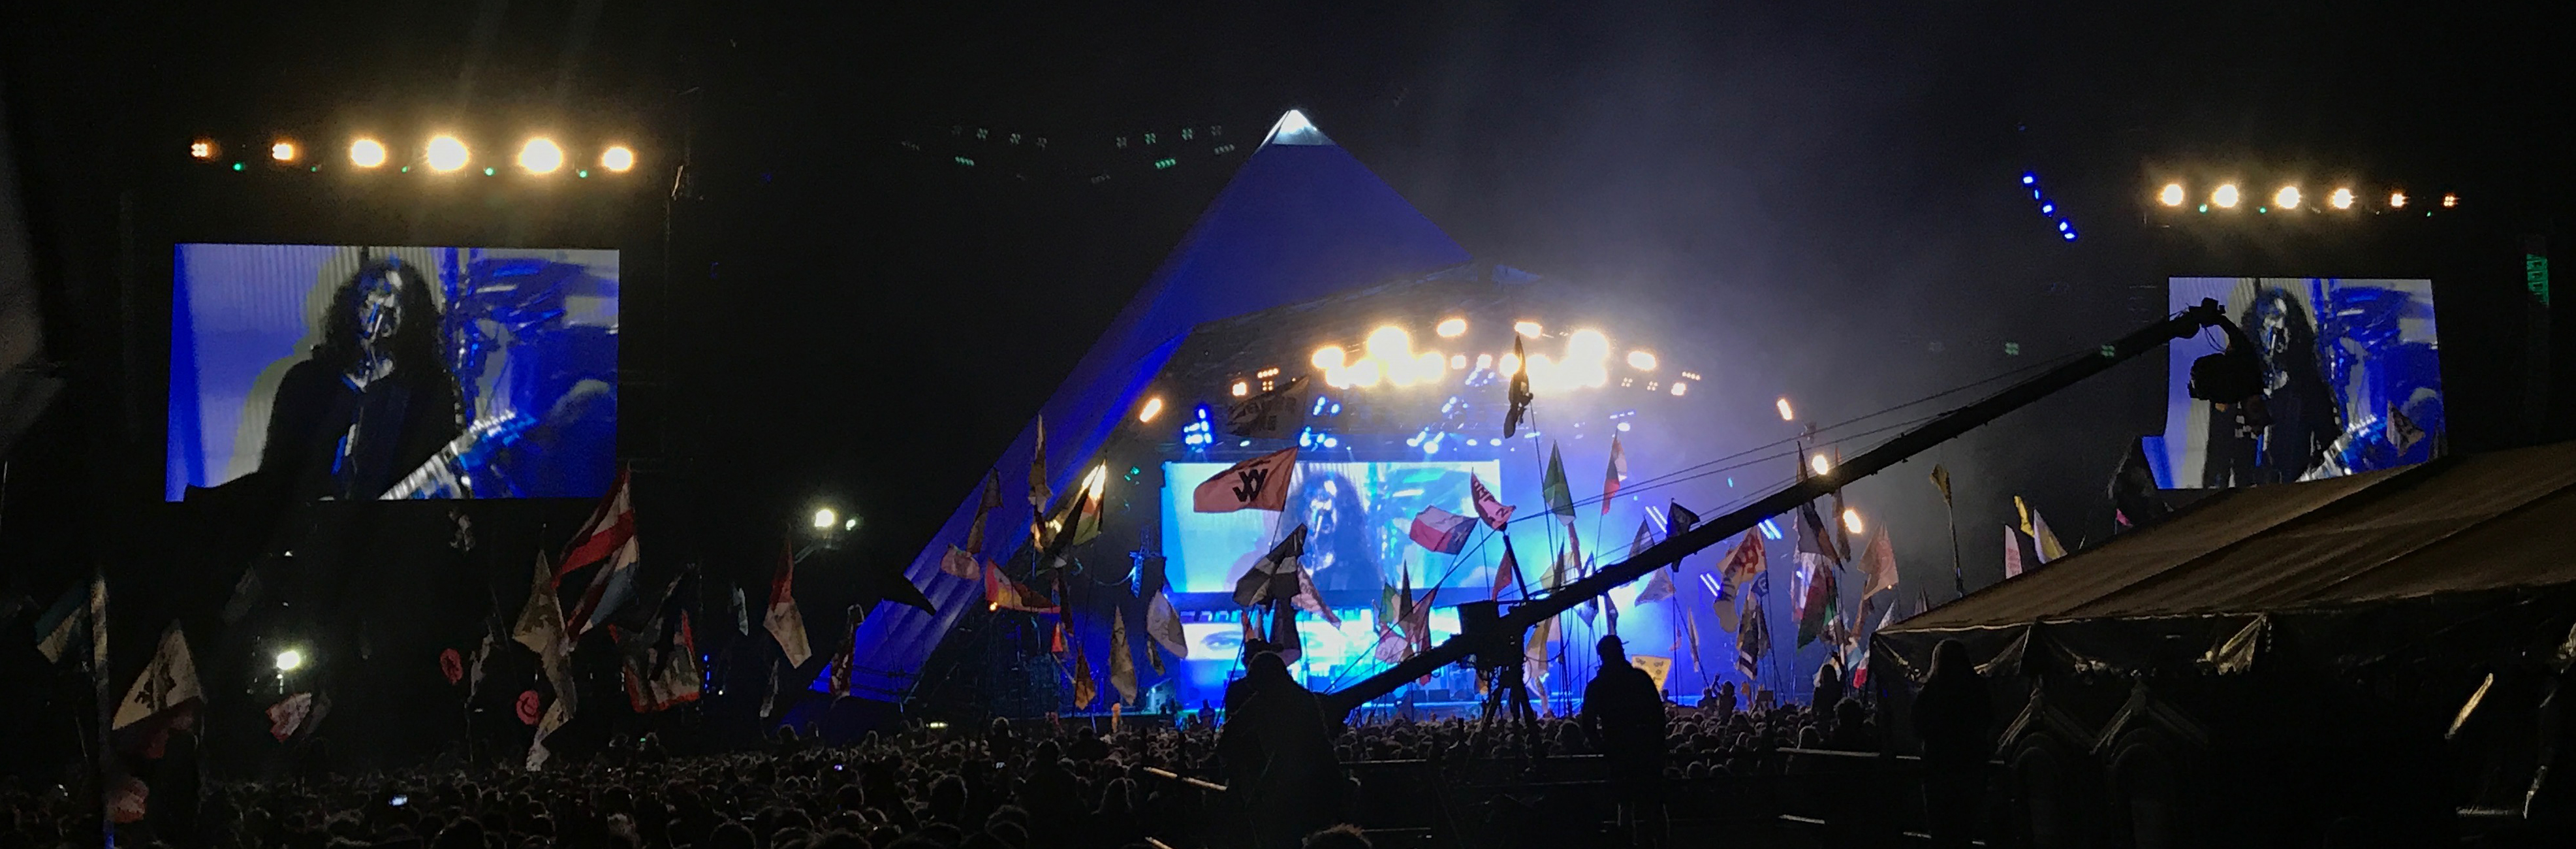 Dave Grohl being amazing on the Pyramid Stage with Foo Fighters